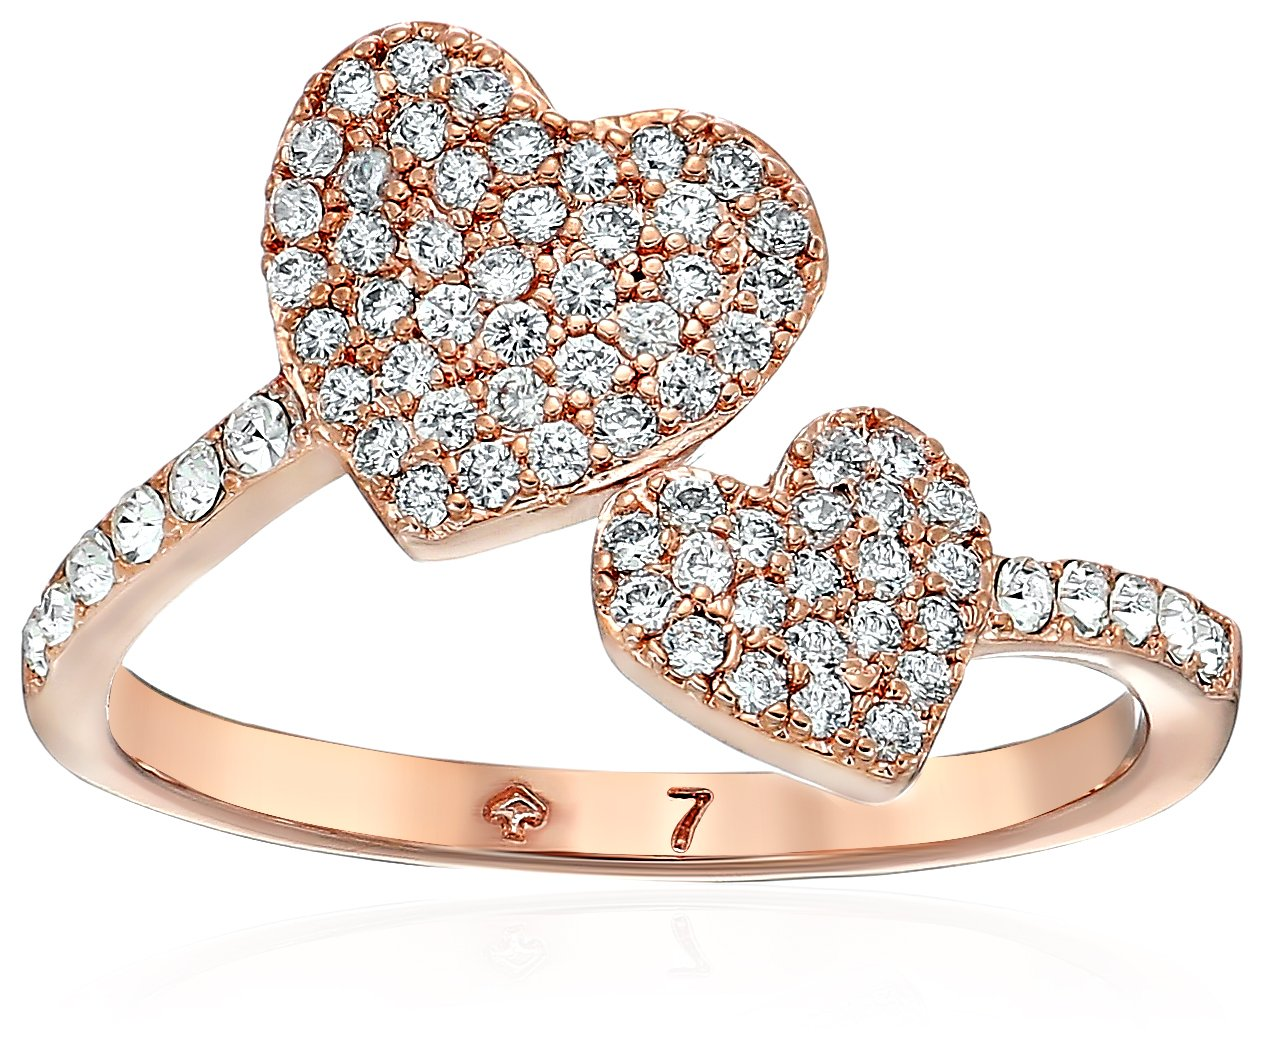 Kate Spade New York Pave Heart Ring, Size 7